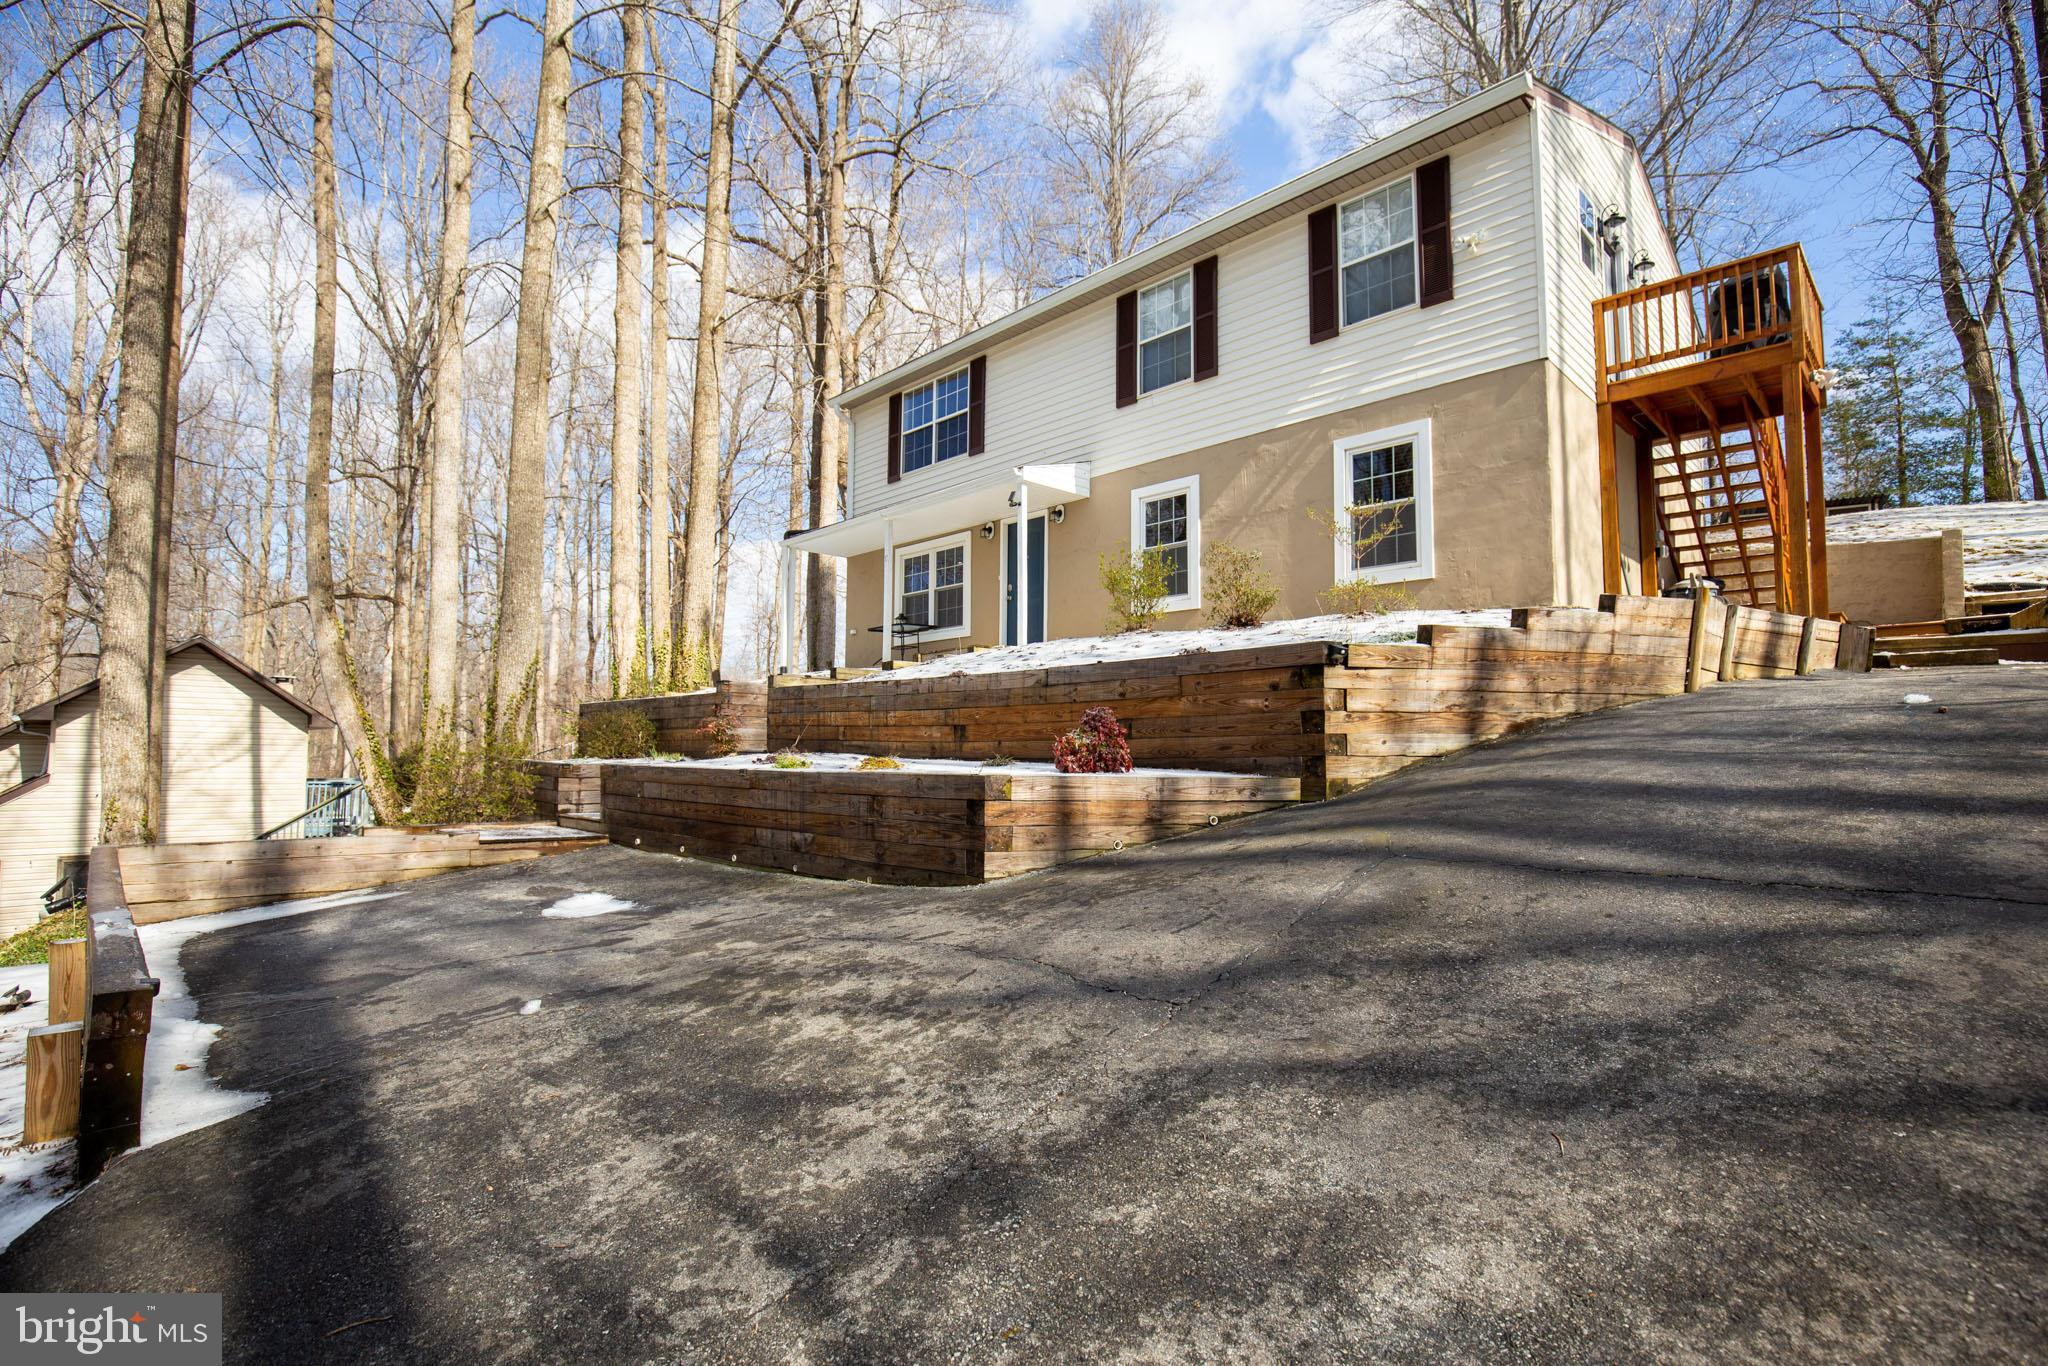 Located in a highly desirable neighborhood just half a mile from the water this unique home has so m